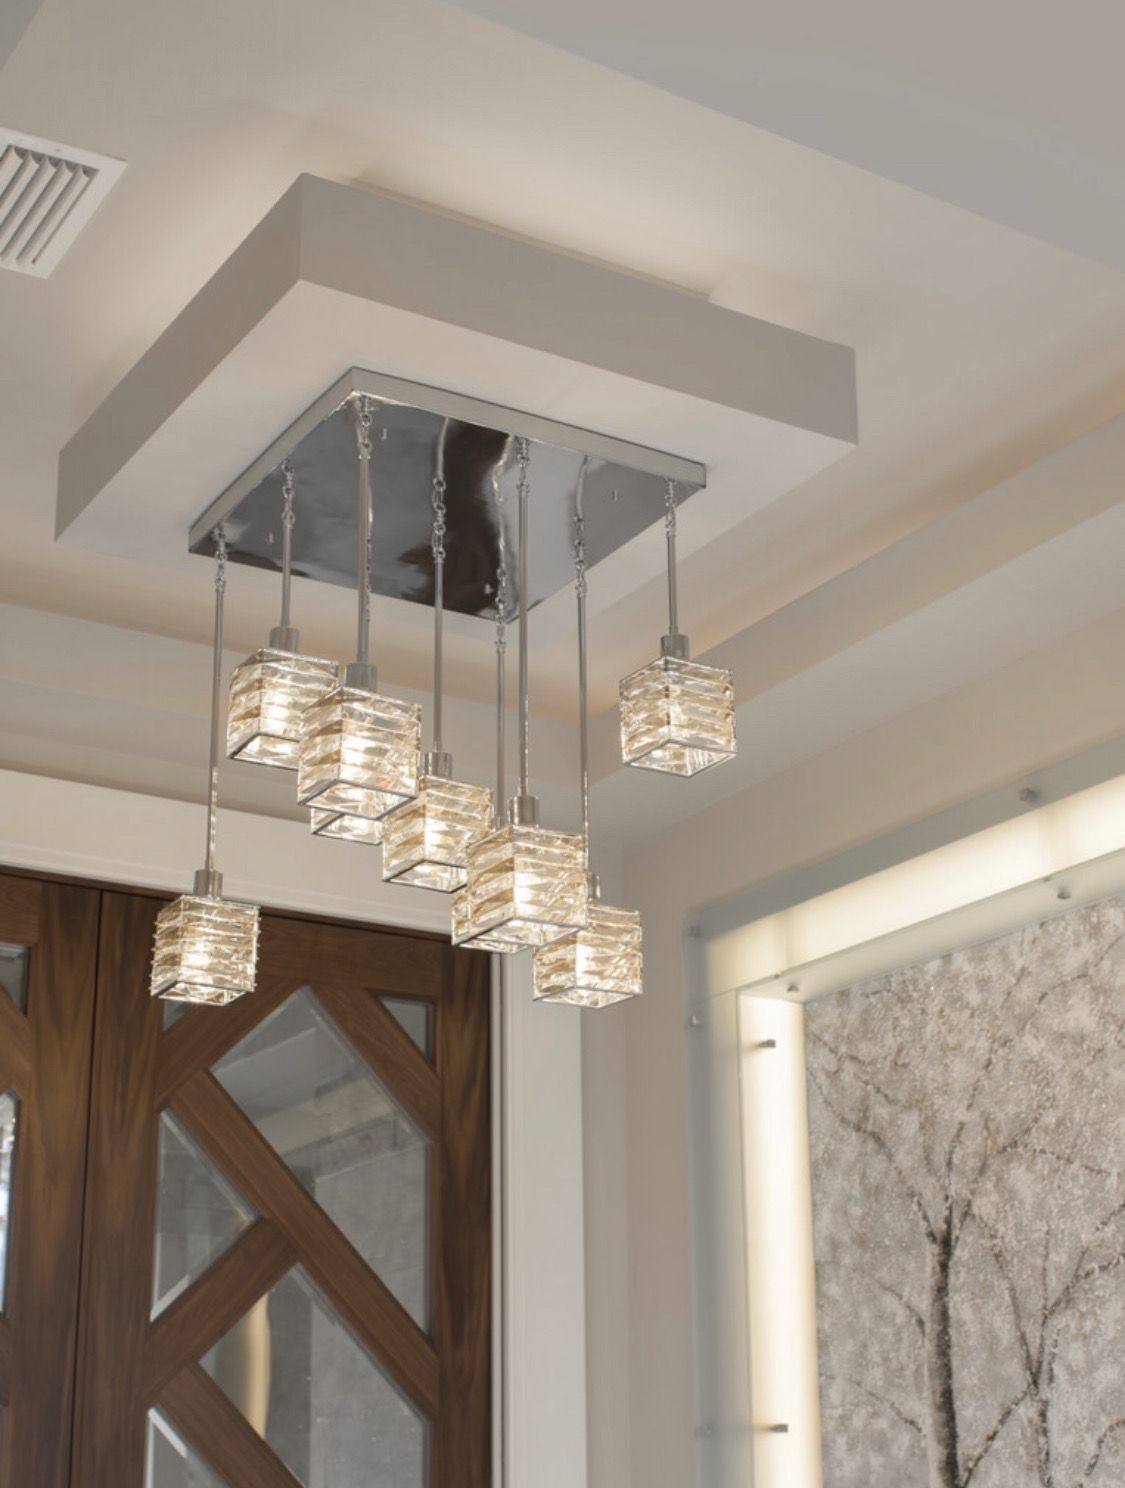 The Luxurious Pointe Foyer Light Fixture With Its Champagne And Clear Class Welcomes Guest To Your H In 2020 Foyer Lighting Fixtures Progress Lighting Foyer Lighting